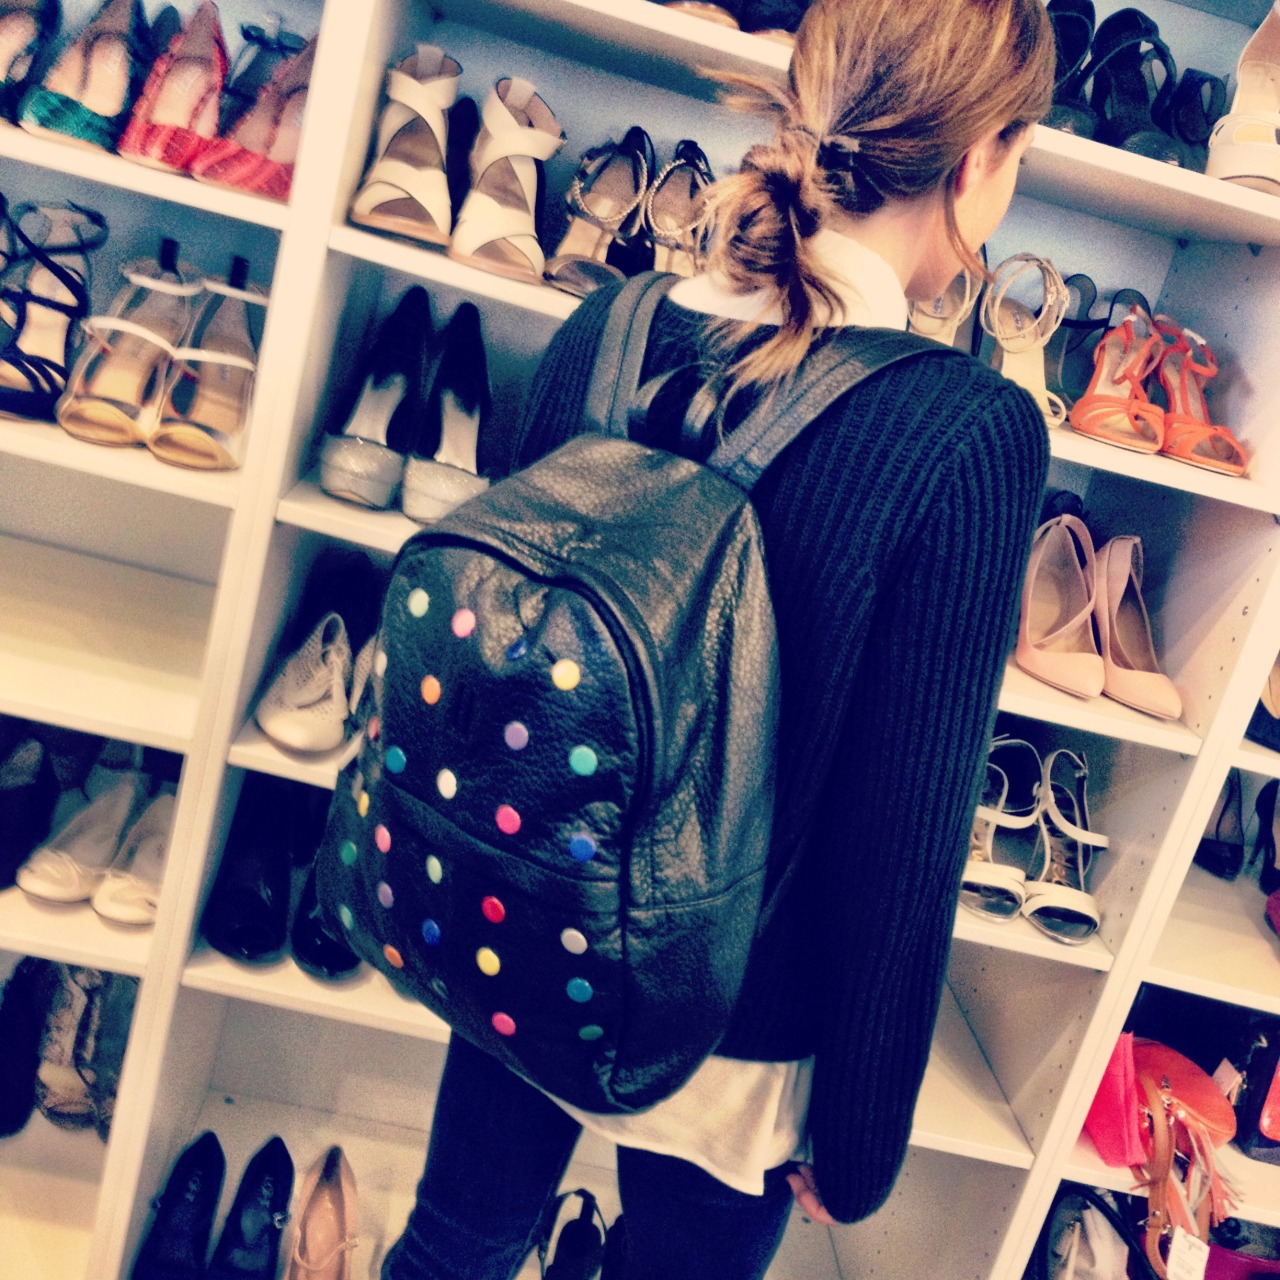 Learn how to create your own polka-dot backpack inspired by The Row x Damien Hirst in our new #DIY with P.S. I Made This!